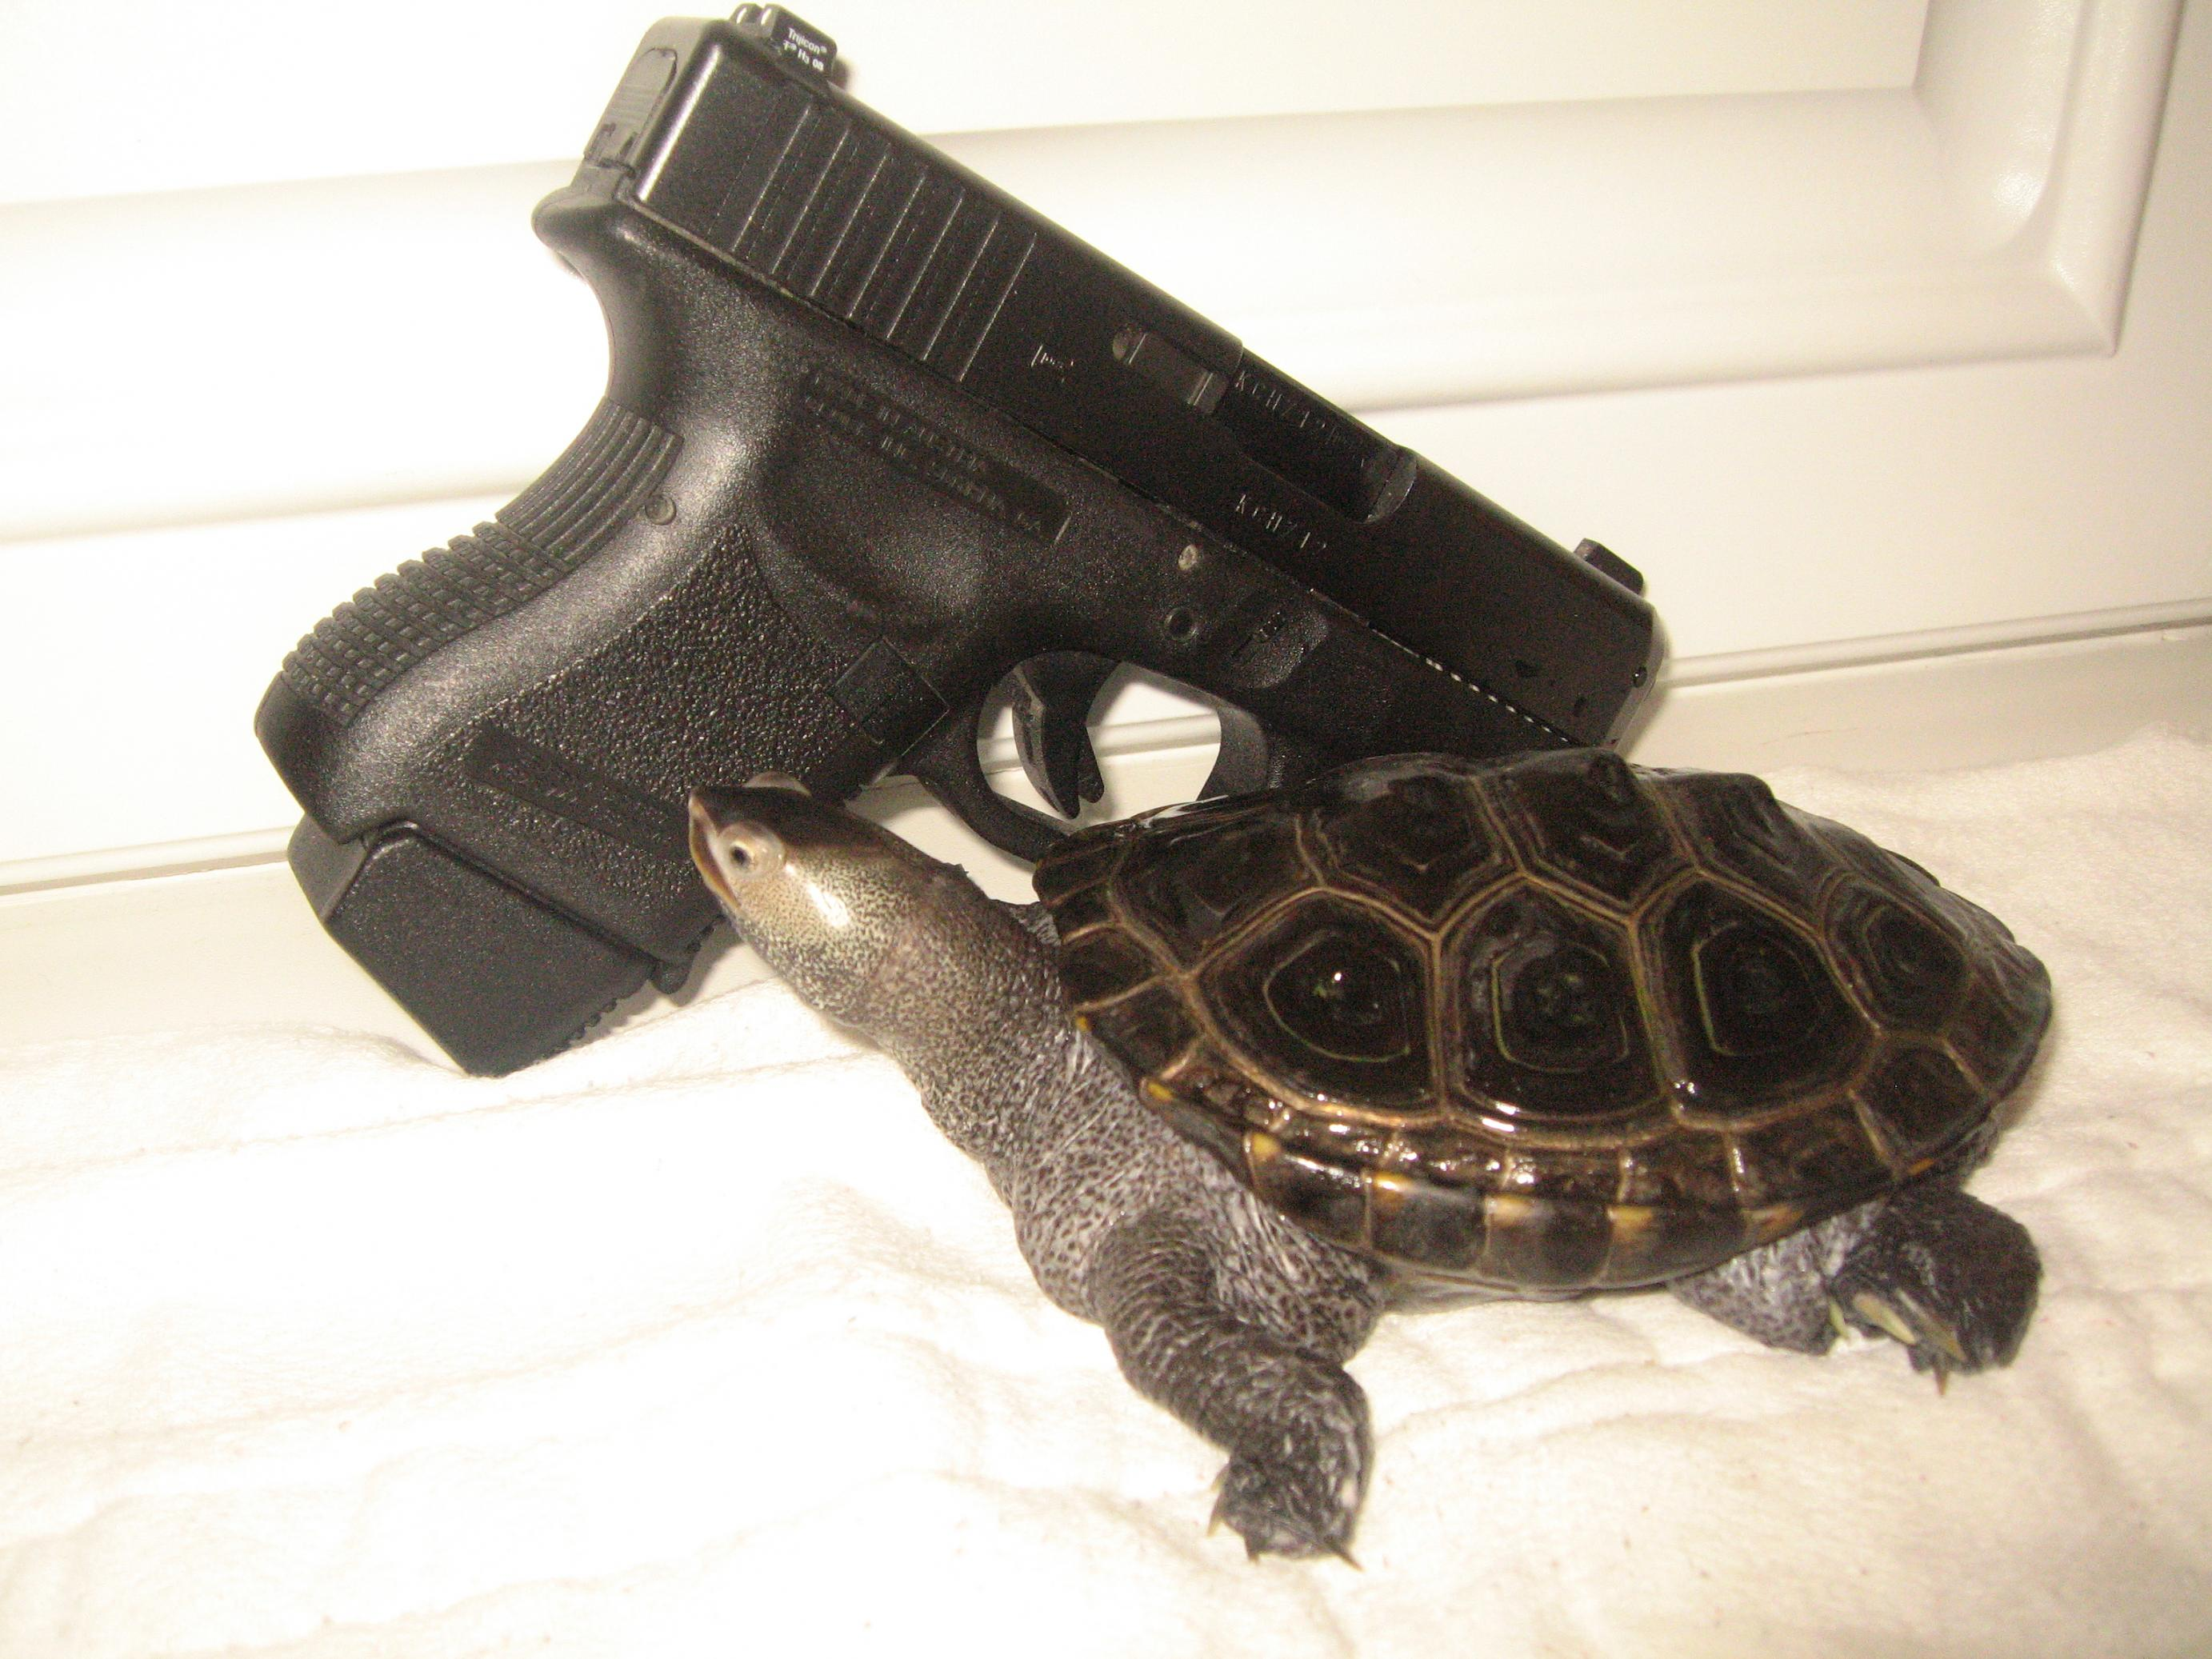 Let's see pics of the Turtle that guards your front door...-turtle-014.jpg